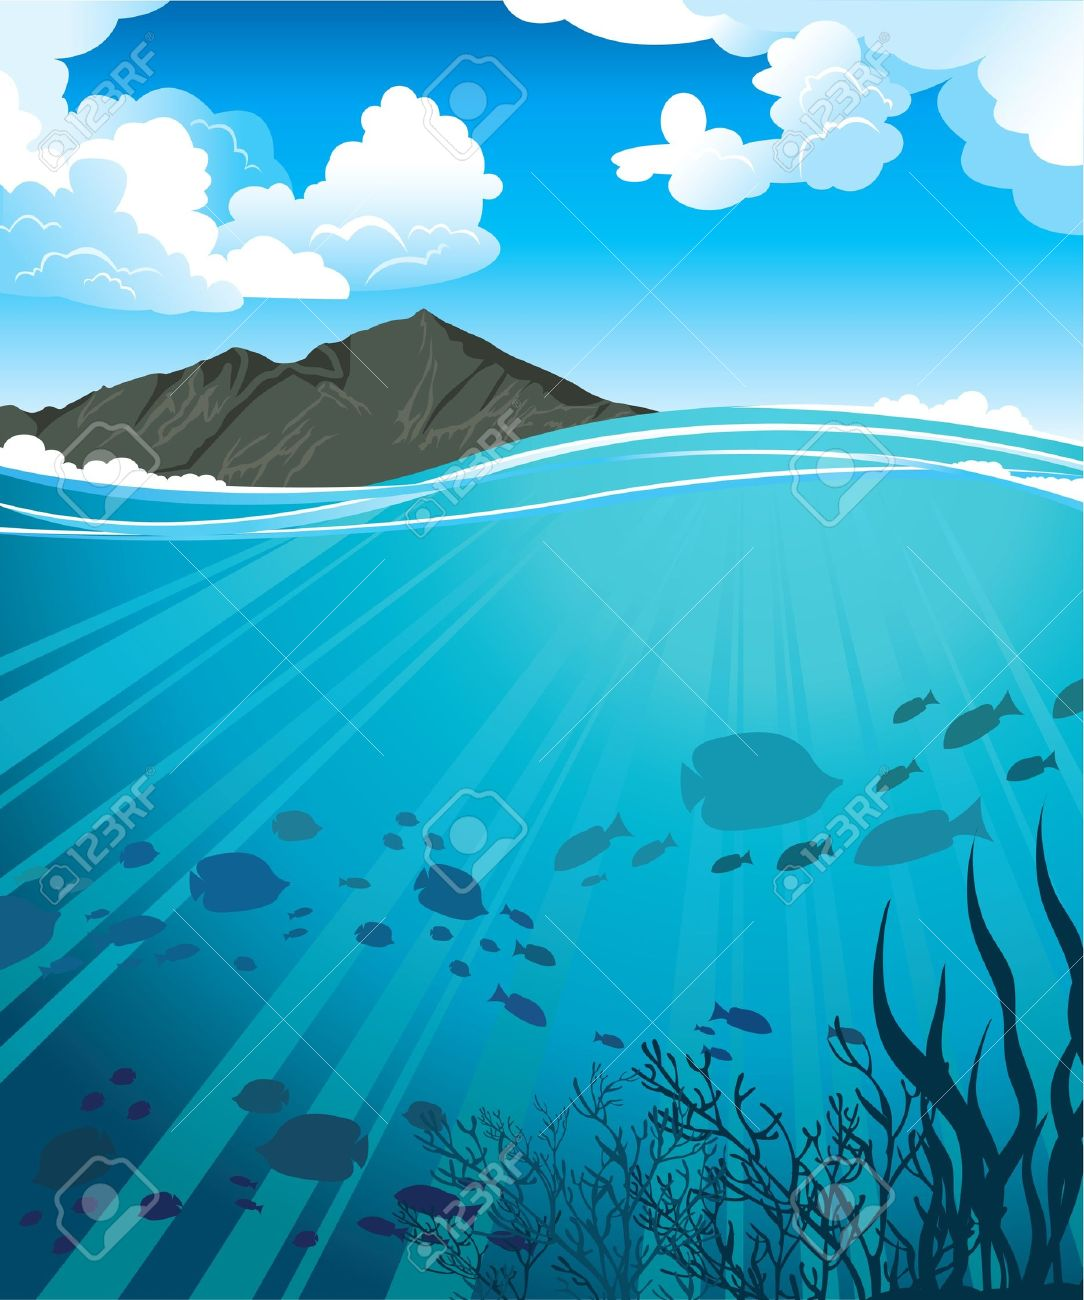 Ocean and mountains clipart #7